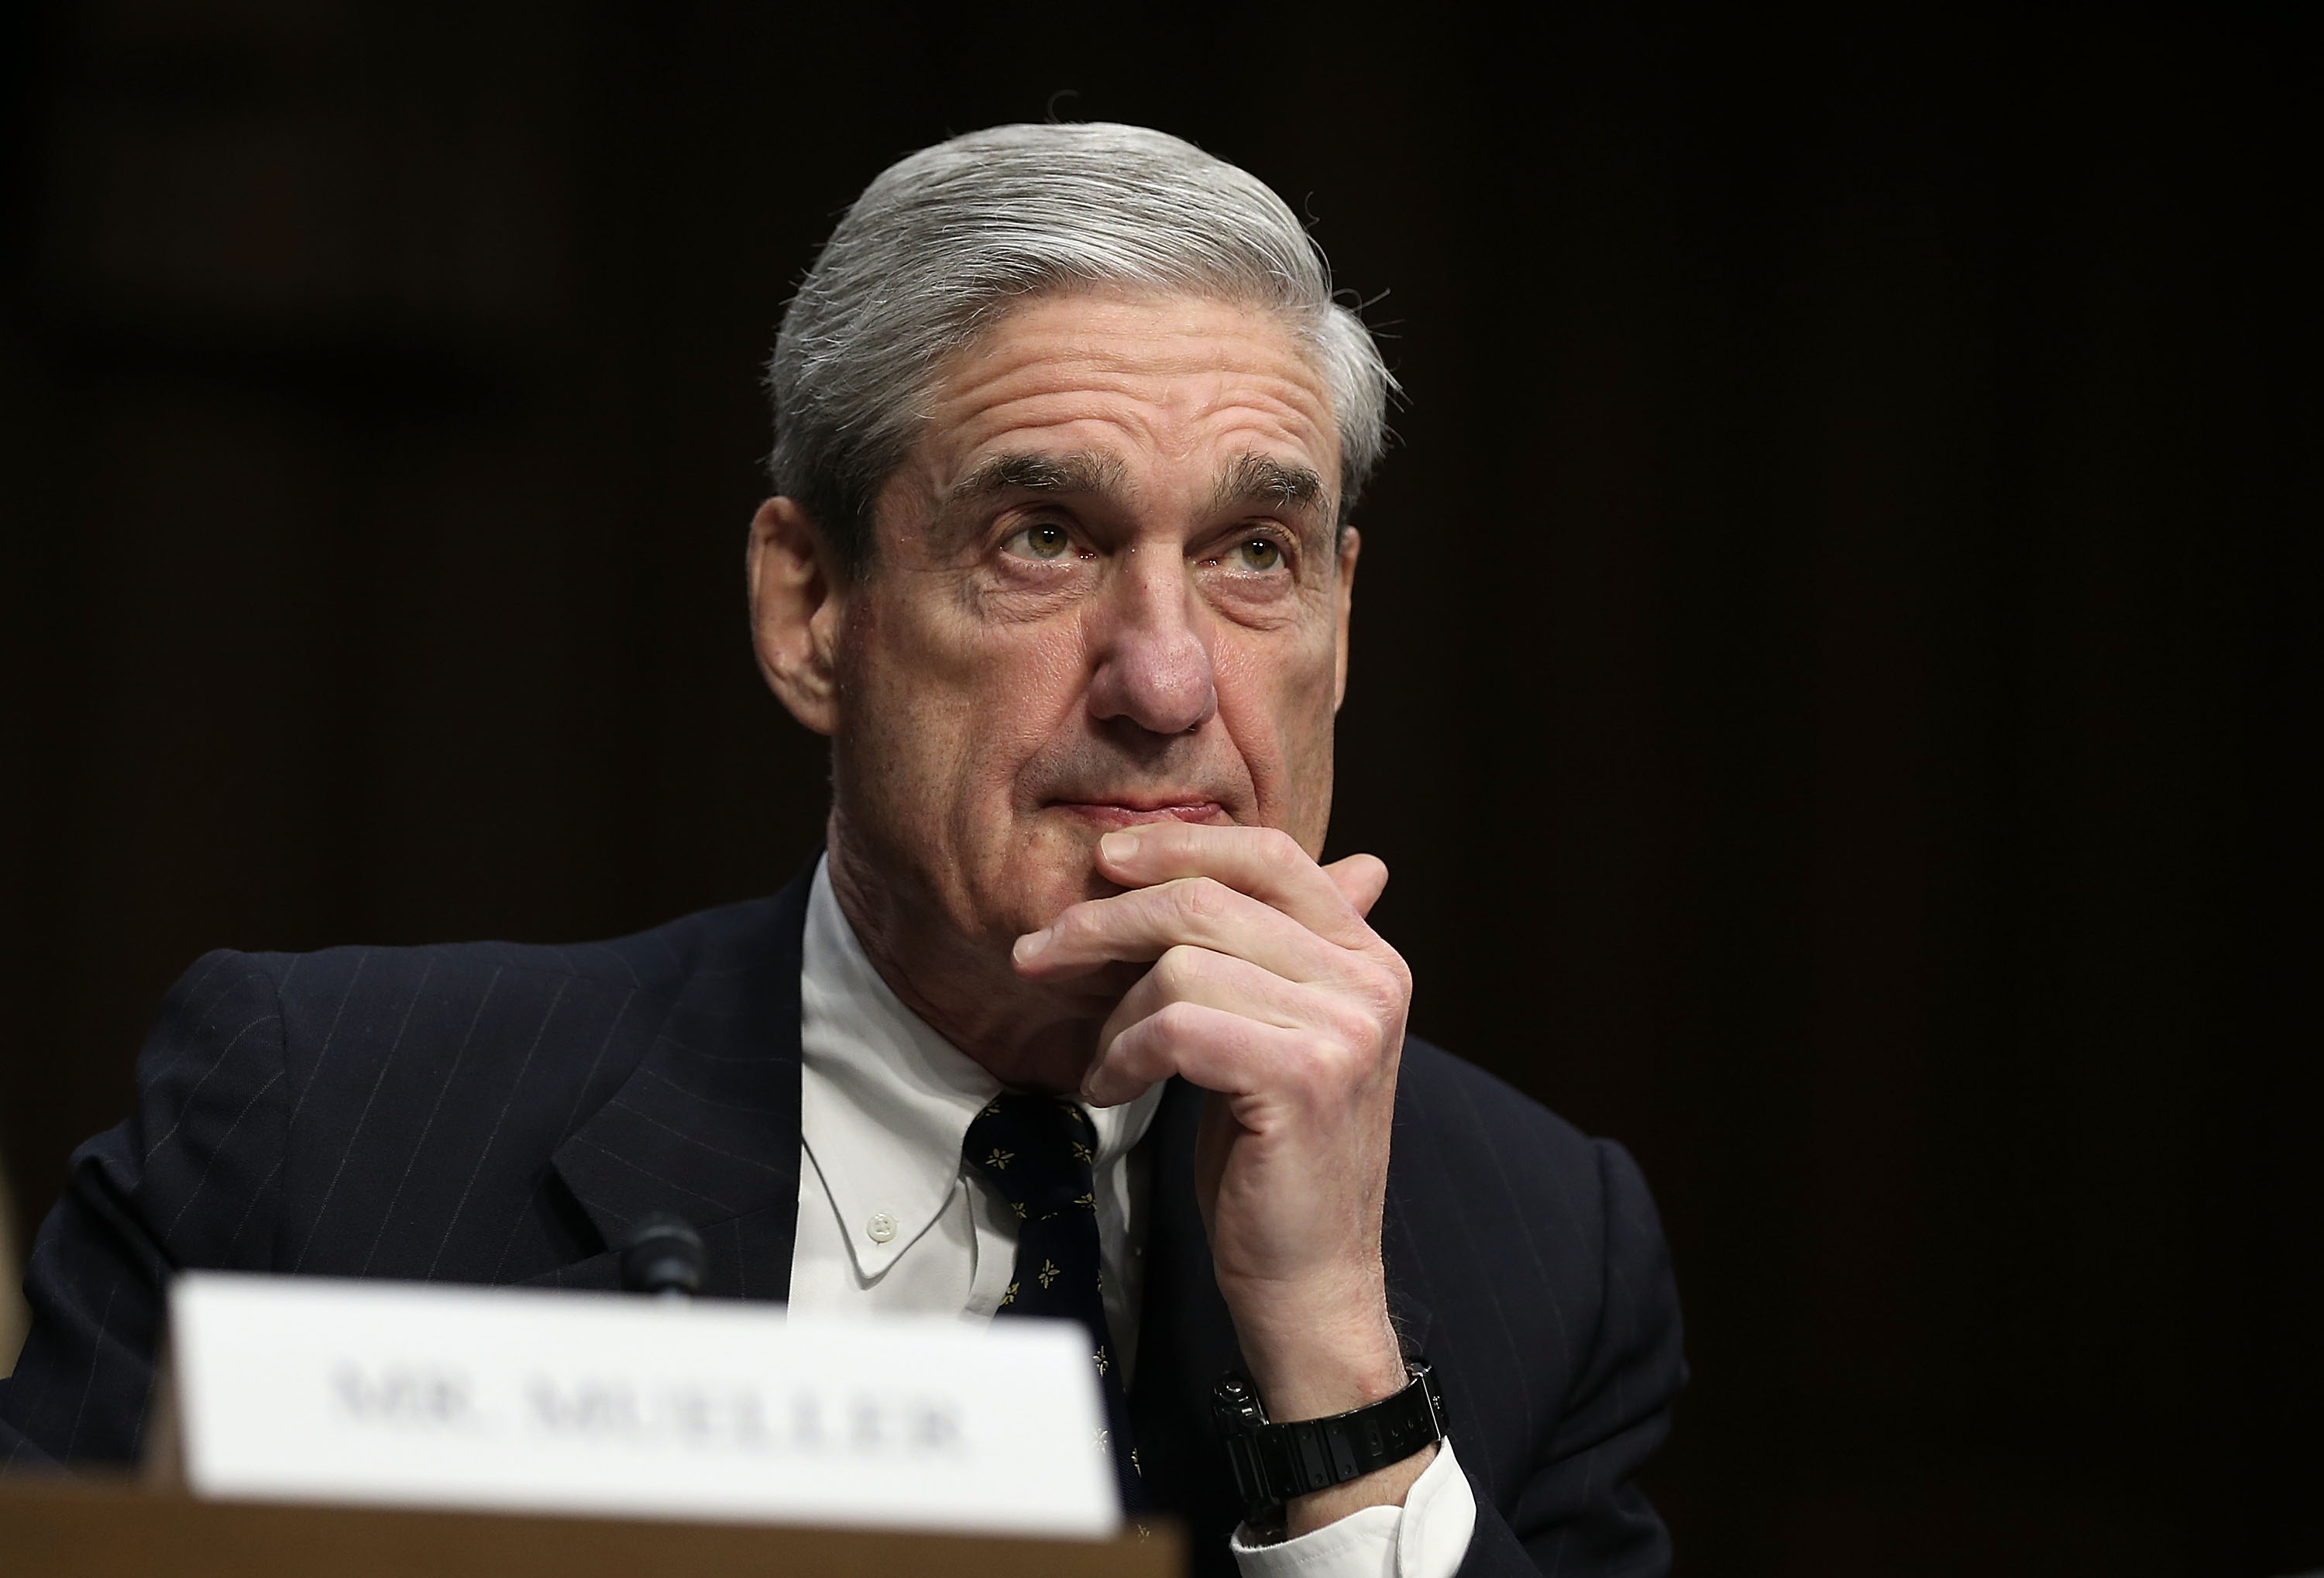 Robert Mueller testifies during a hearing before the Senate (Select) Intelligence Committee March 12, 2013 on Capitol Hill in Washington, D.C.